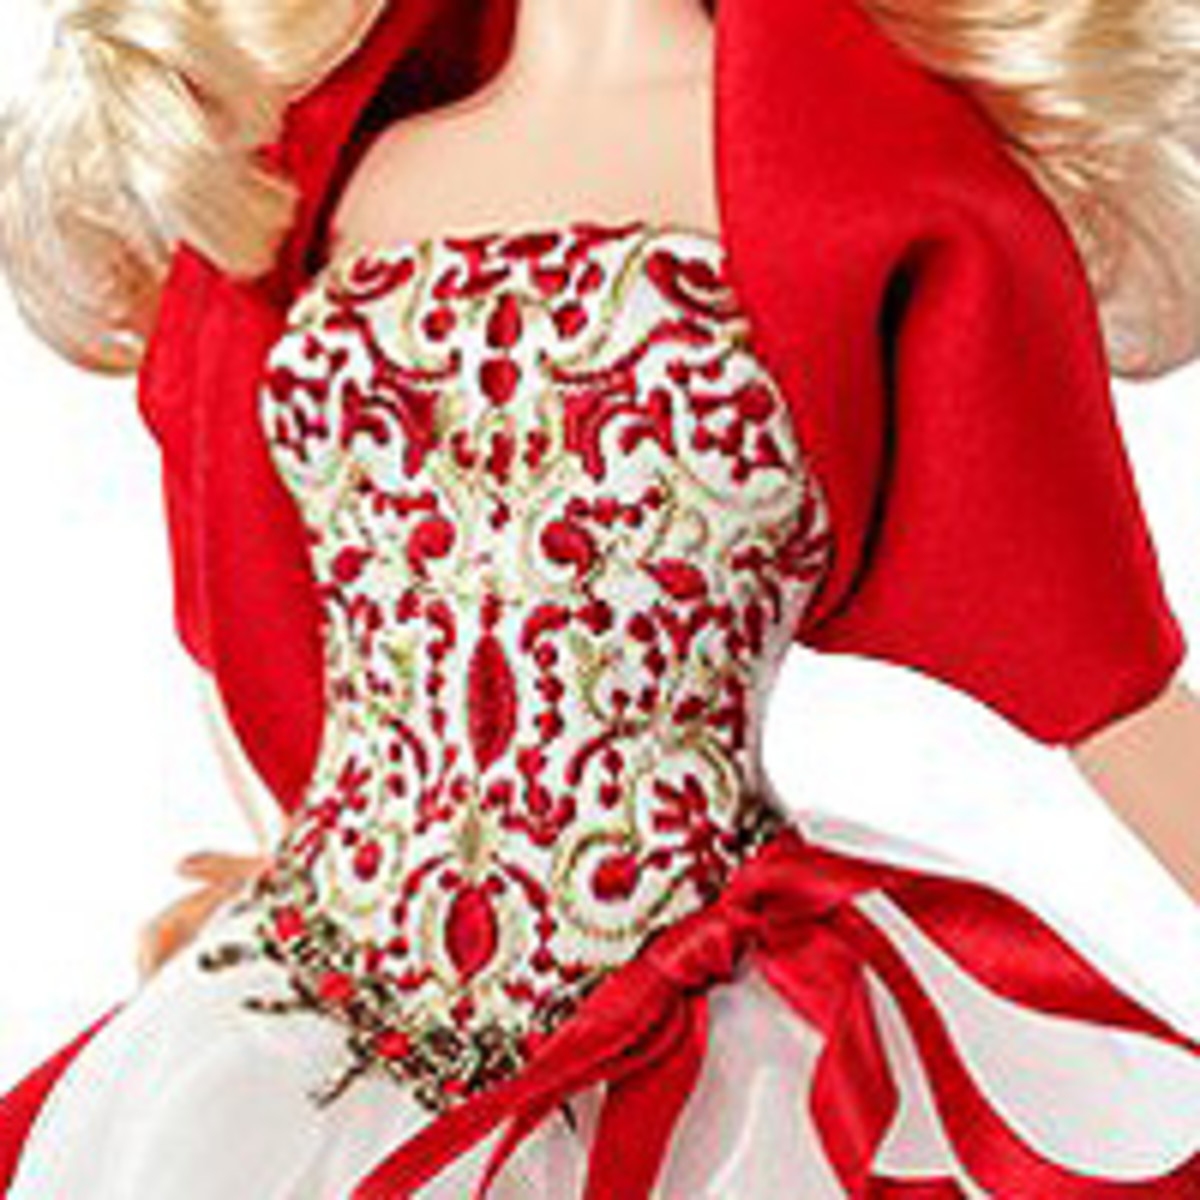 Barbie Collector 2010 dress is a beautiful red and golden bodice is an elegant way to celebrate the season.